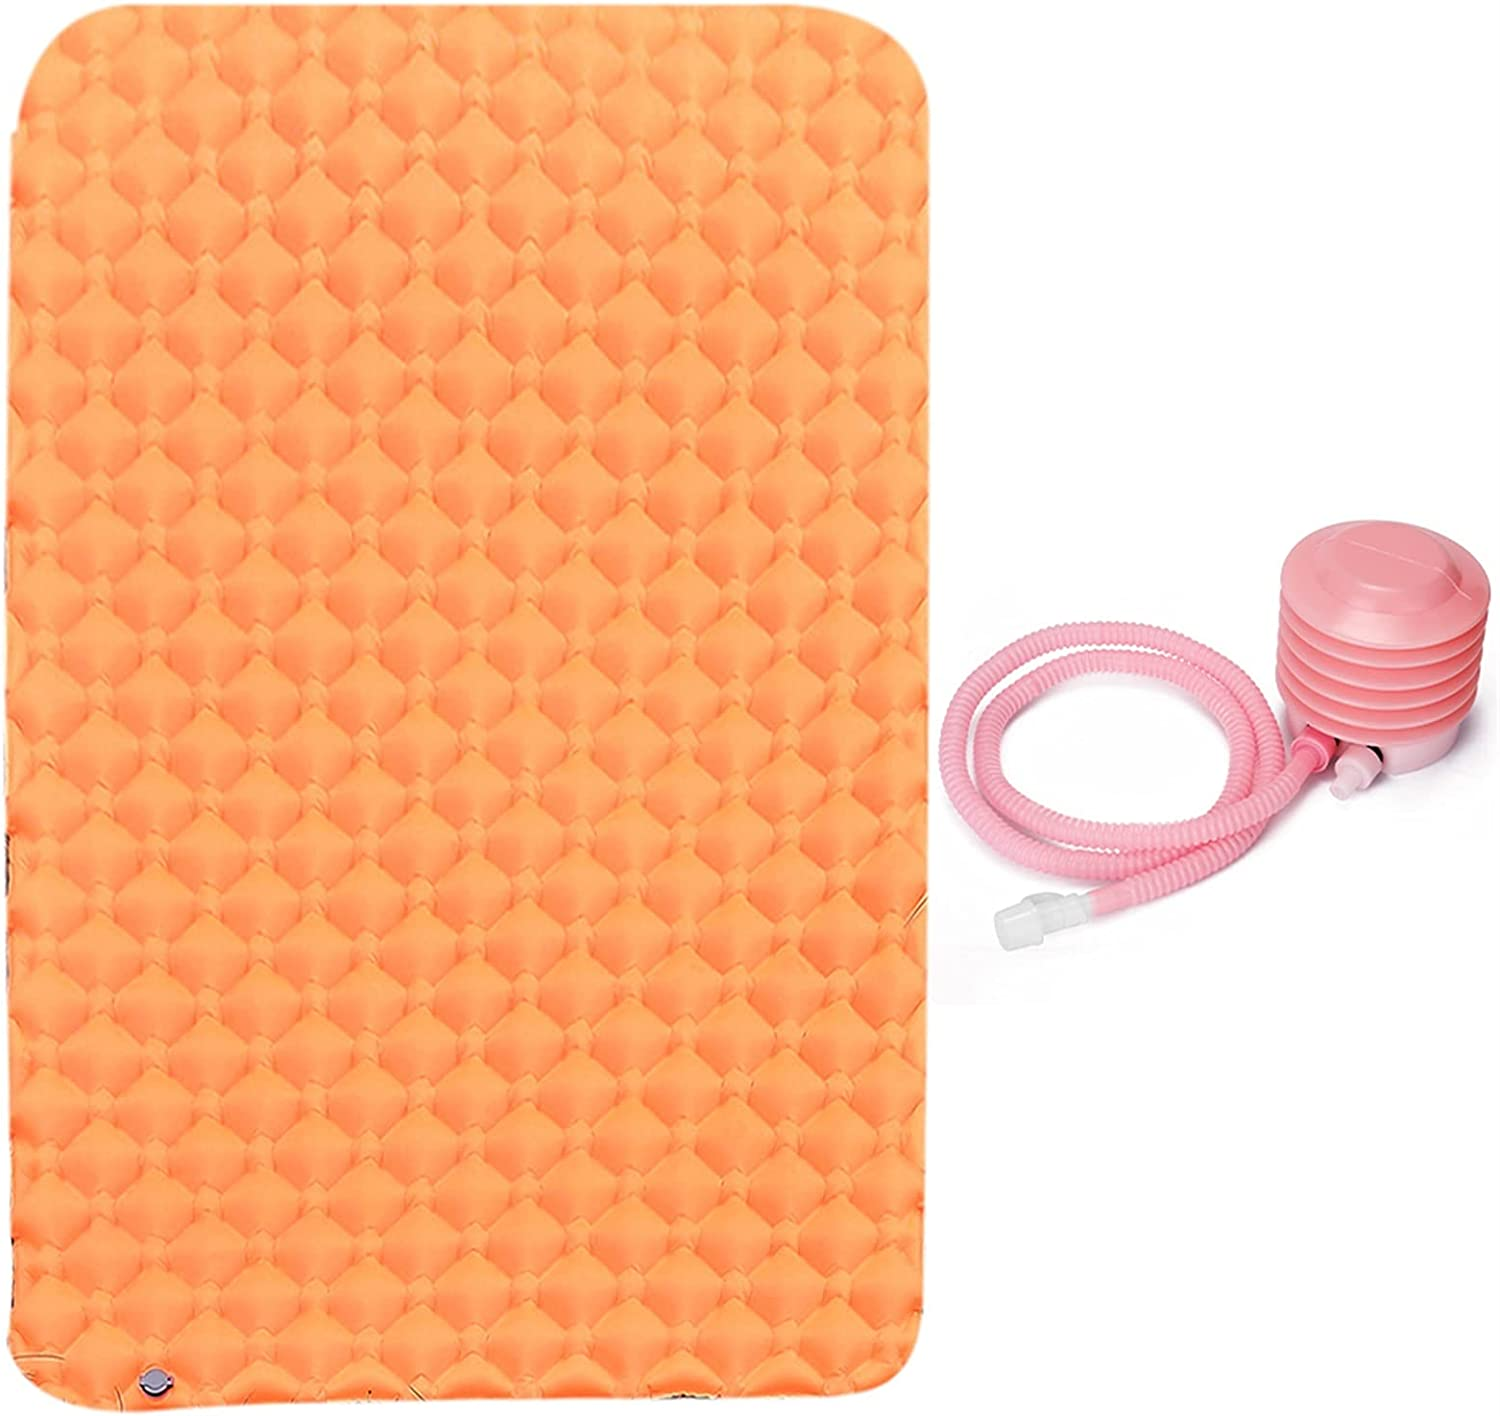 WWPP Camping Sleeping pad Lightweight All items in the store Direct sale of manufacturer Outd TPU Suitable f Most